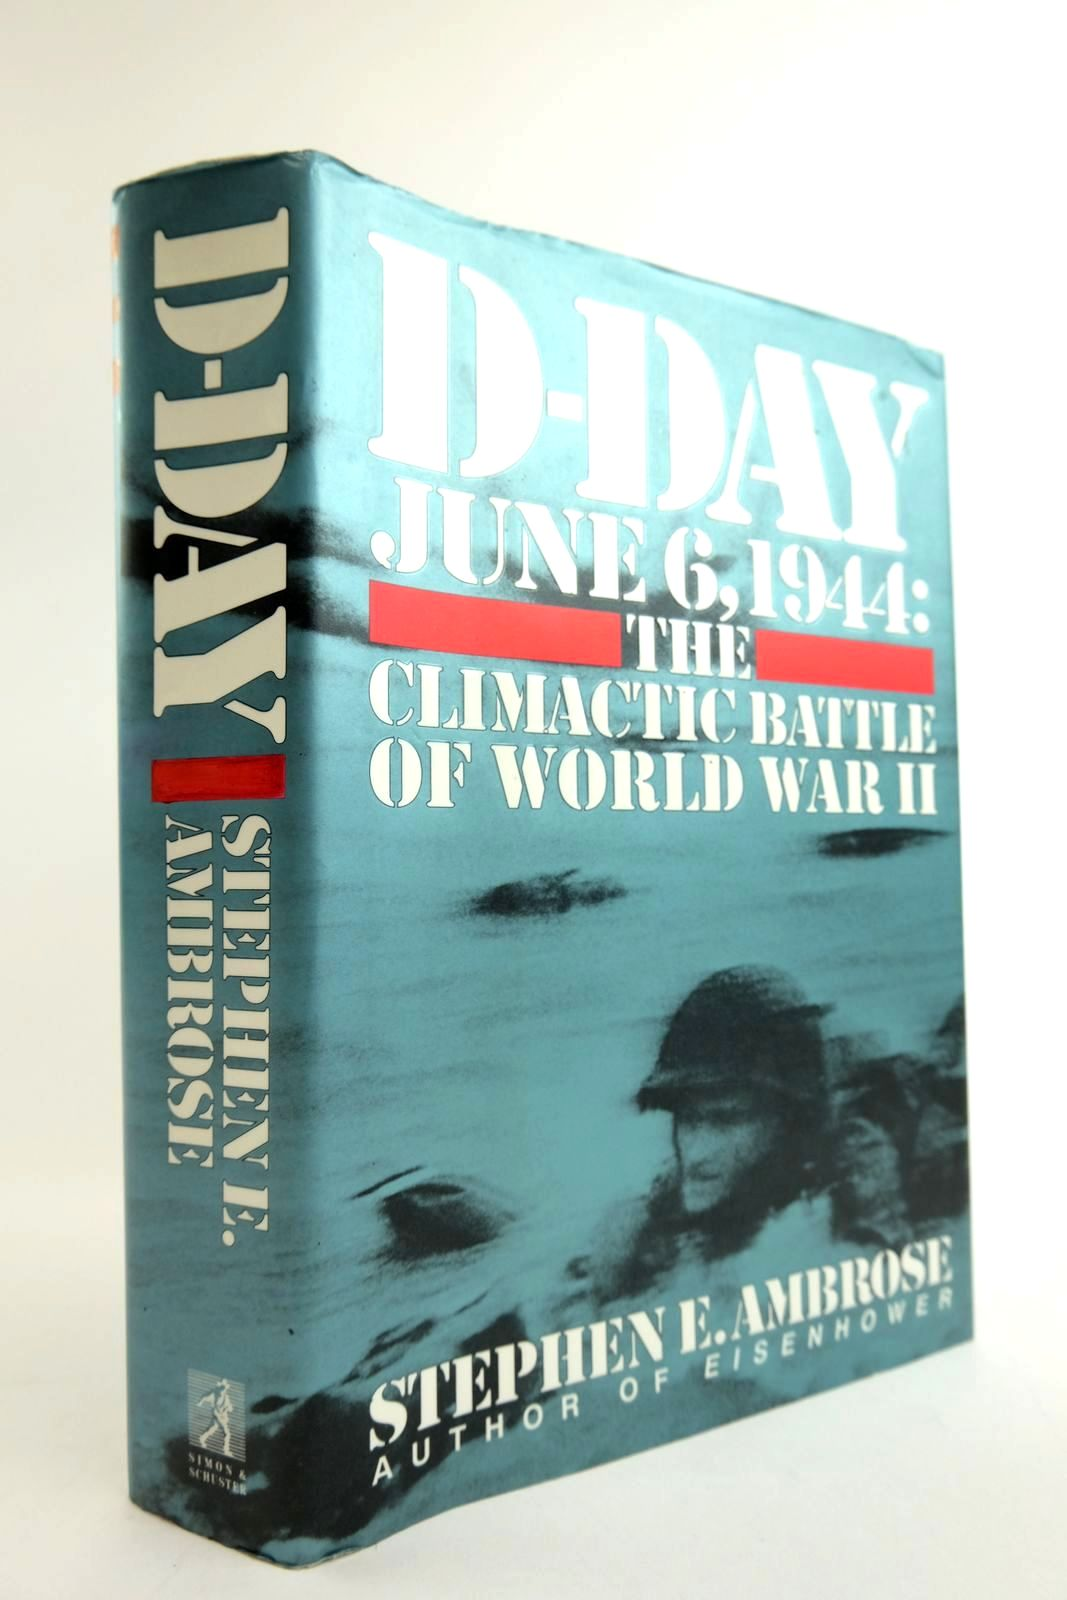 Photo of D-DAY JUNE 6, 1944: THE CLIMACTIC BATTLE OF WORLD WAR II- Stock Number: 2133433